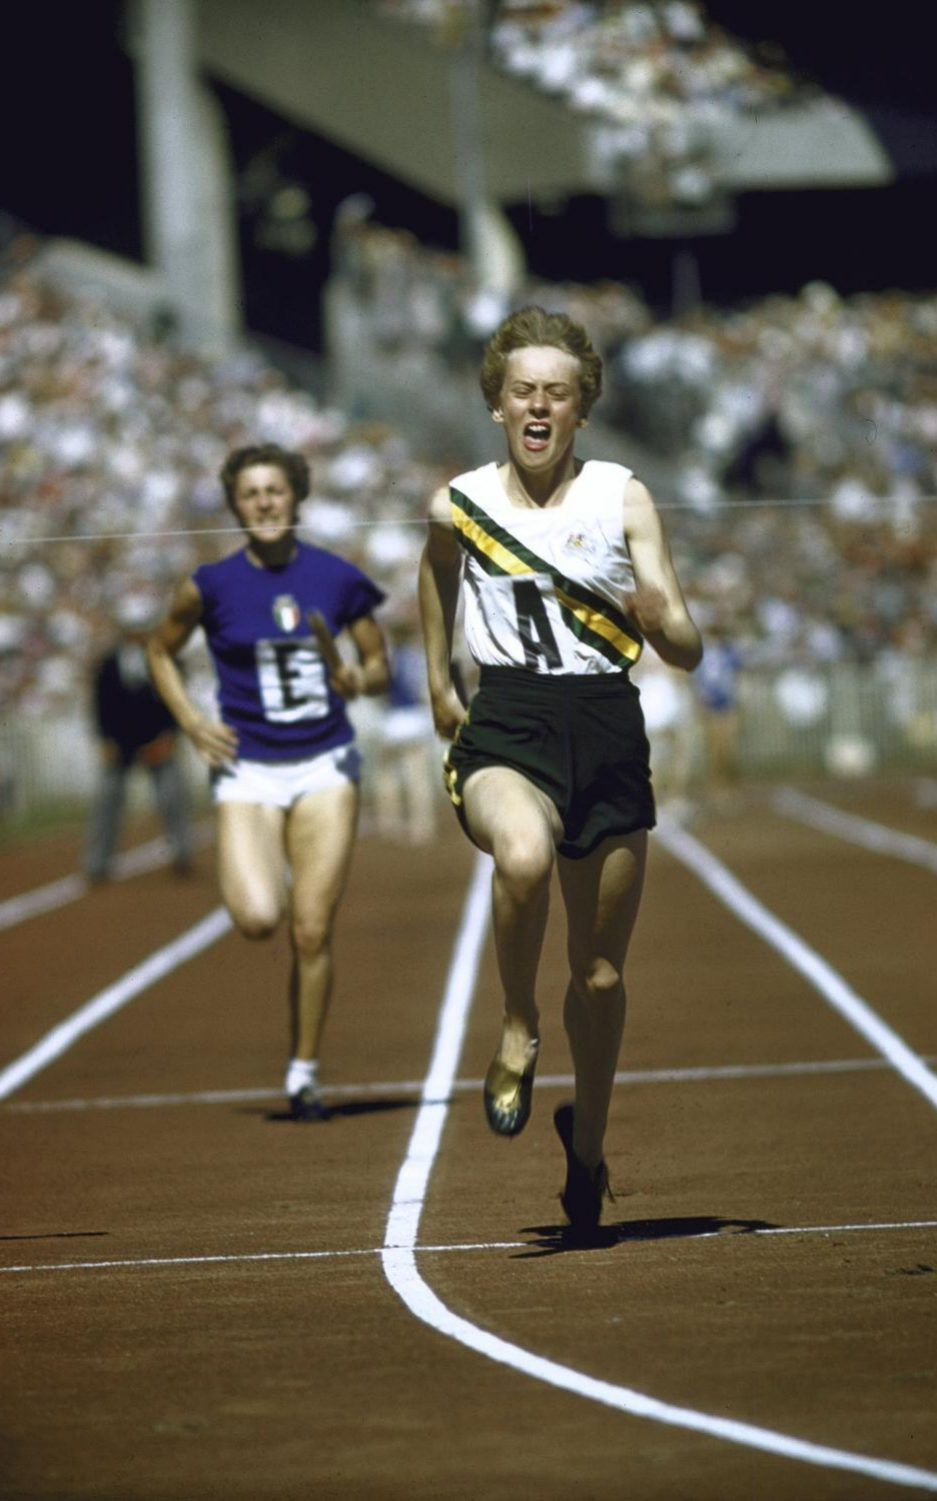 Forum on this topic: Eva Tanguay, betty-cuthbert-4-olympic-medals/